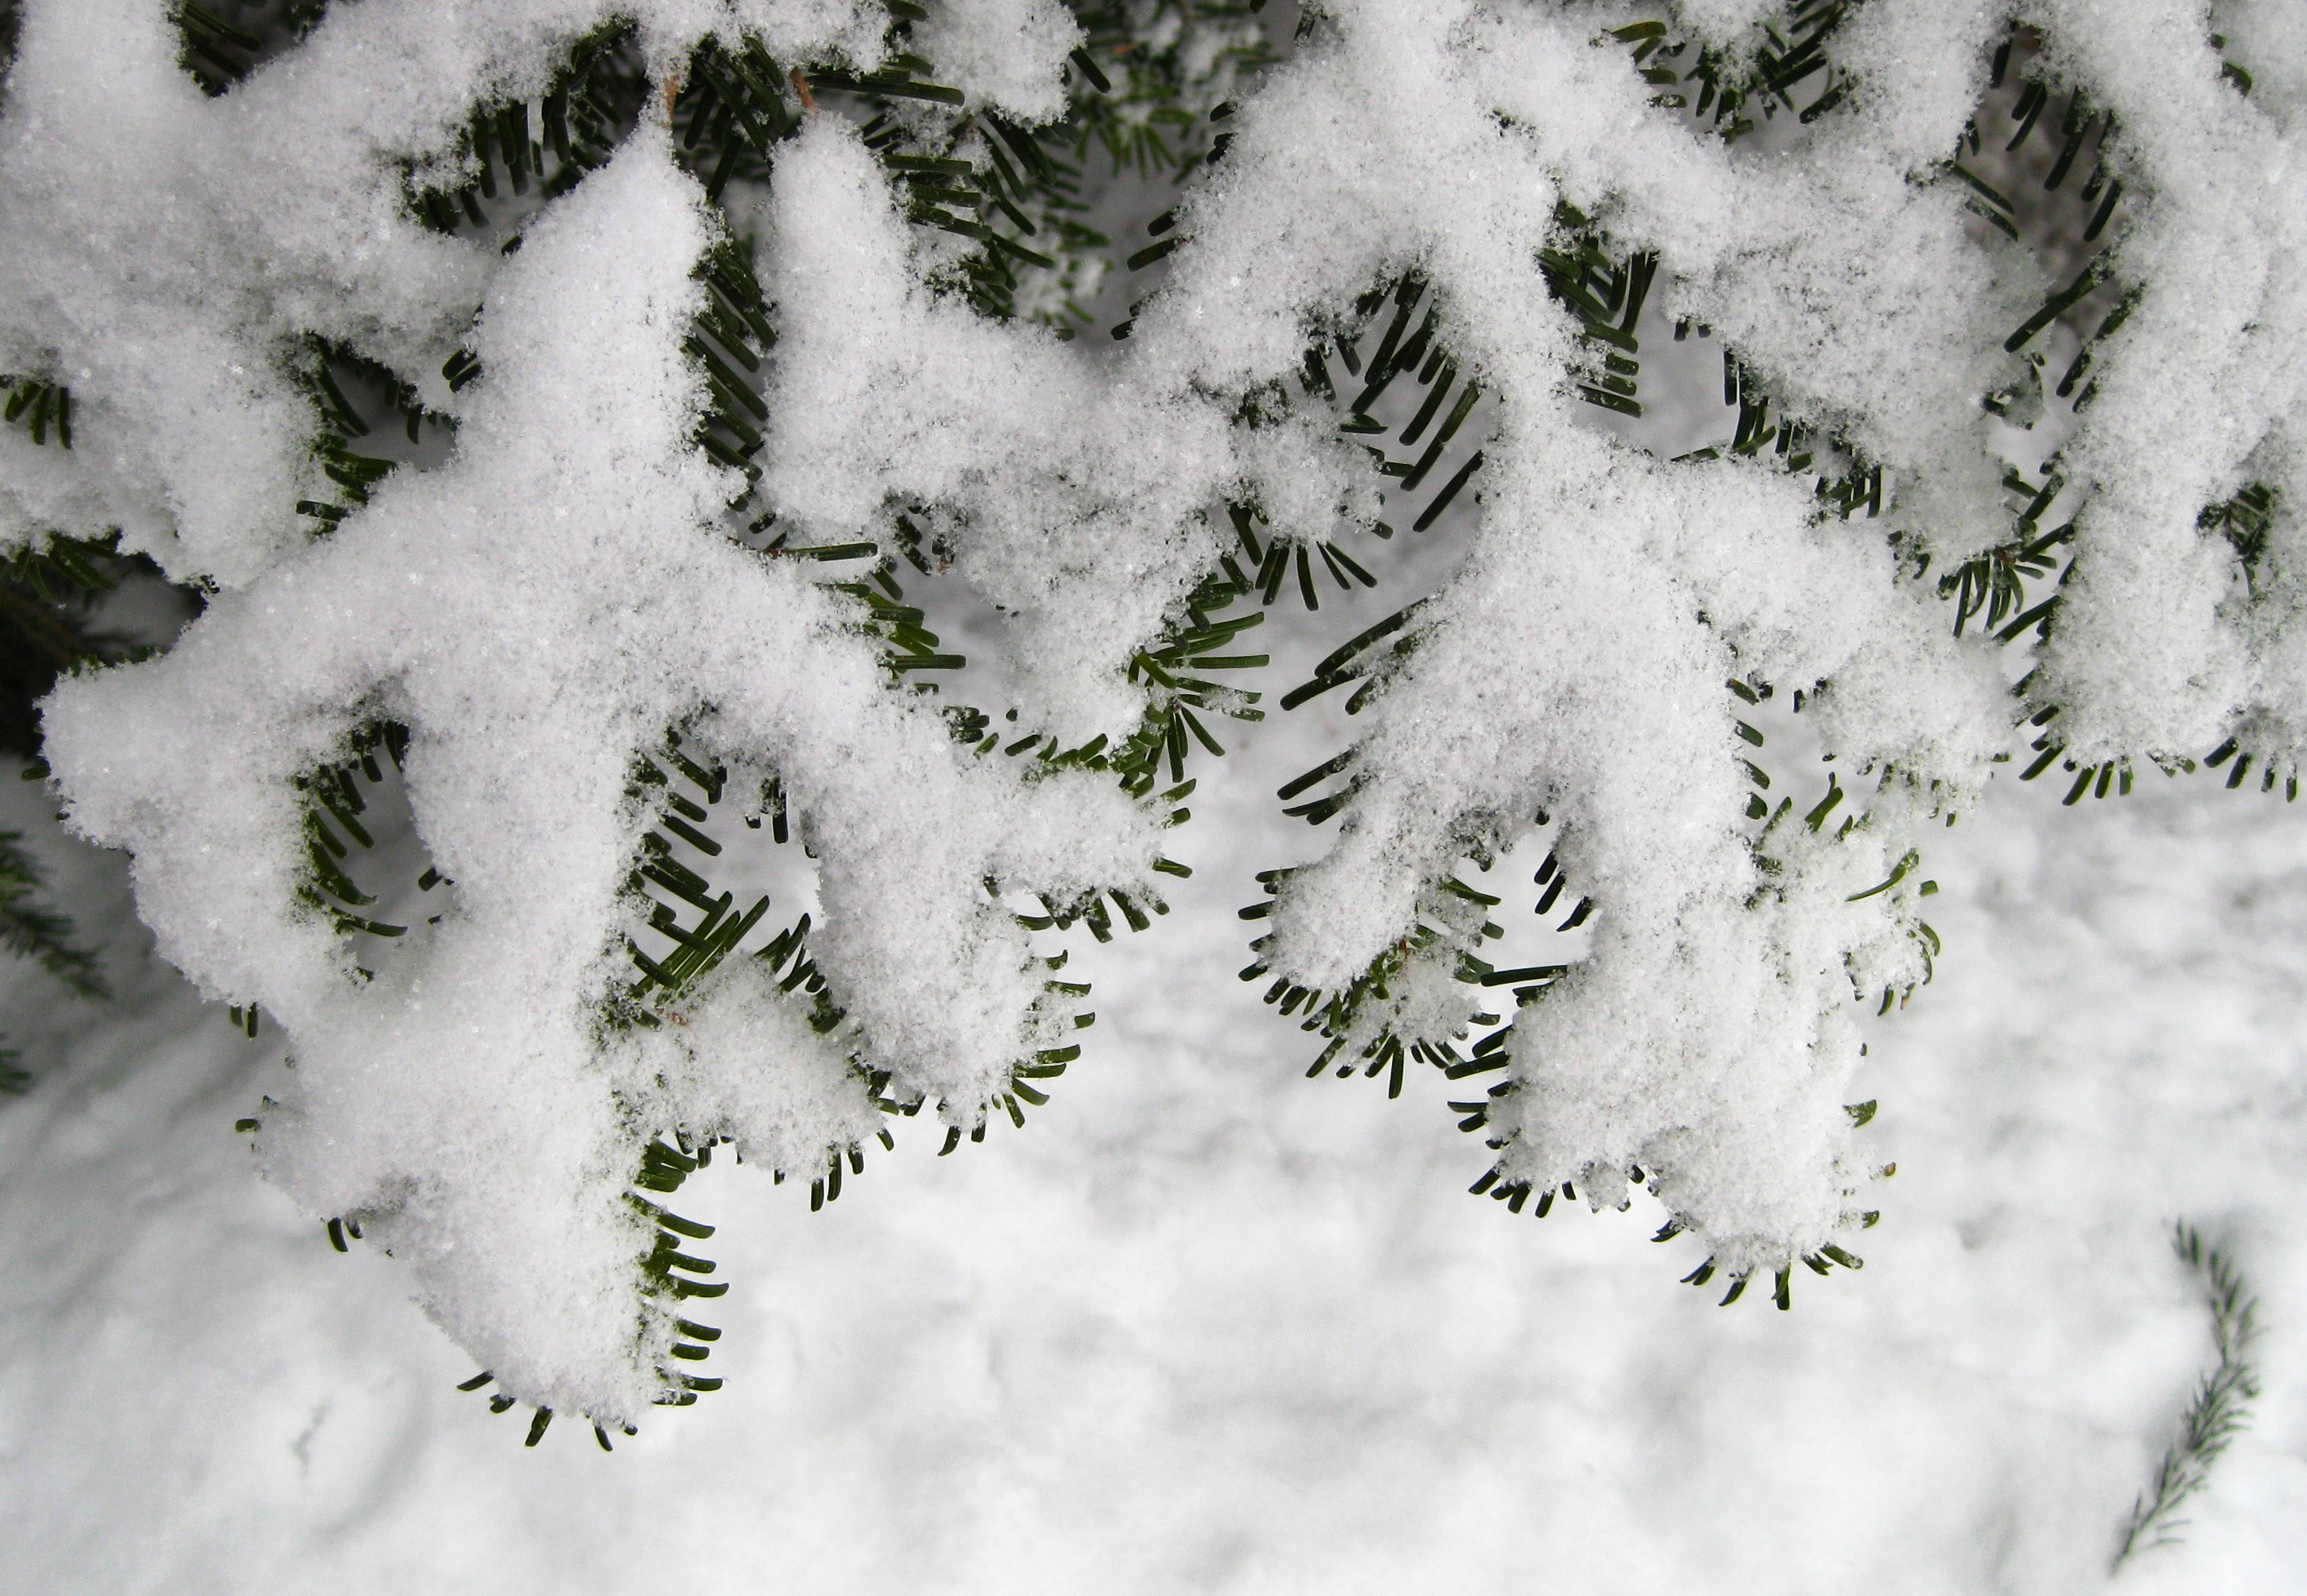 Dusting of snow on branch